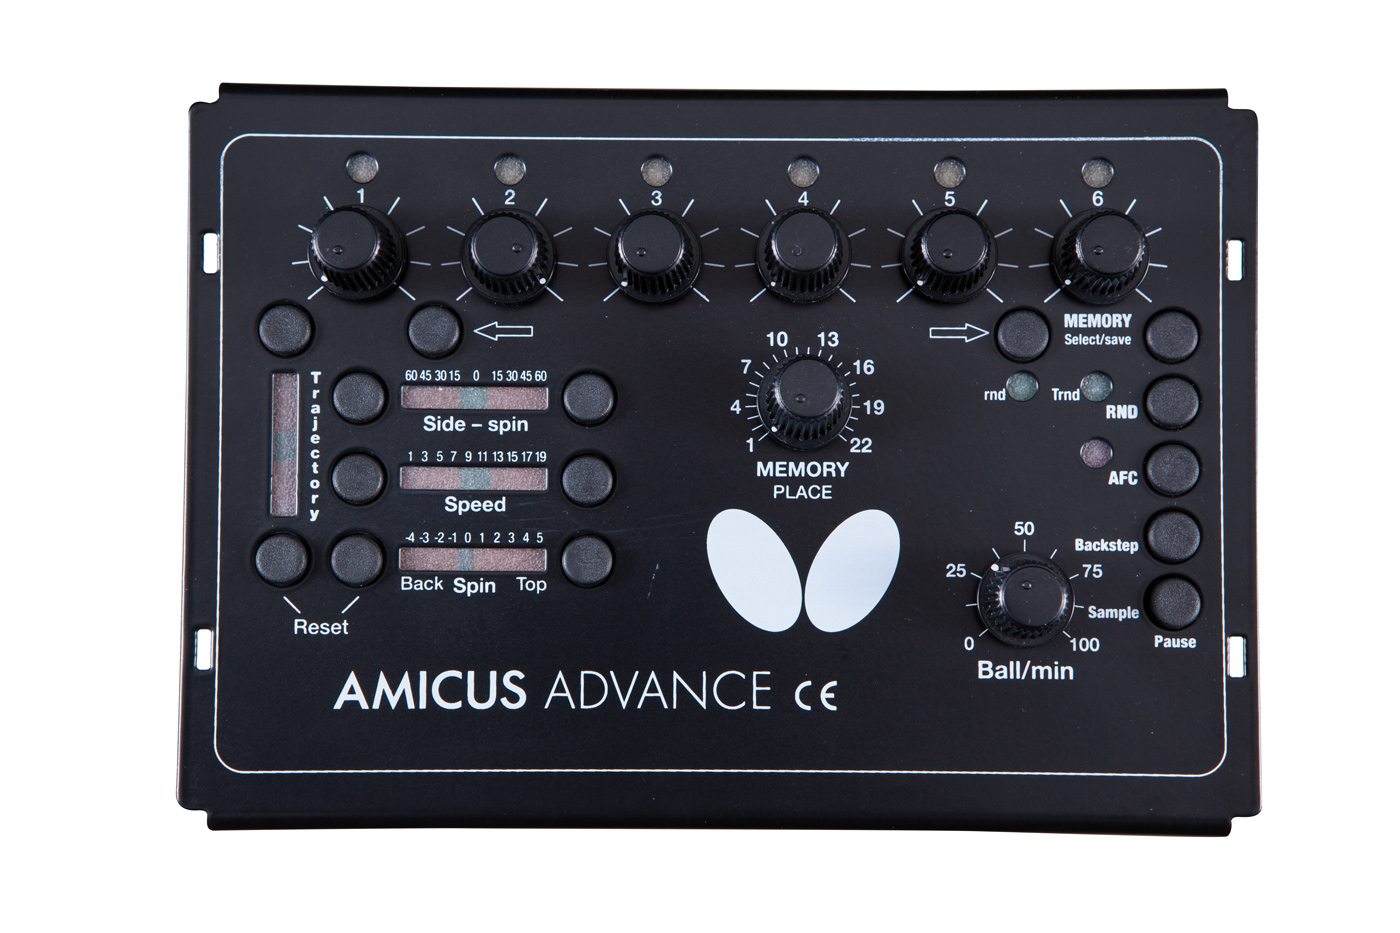 Amicus Advance table tennis robot control panel